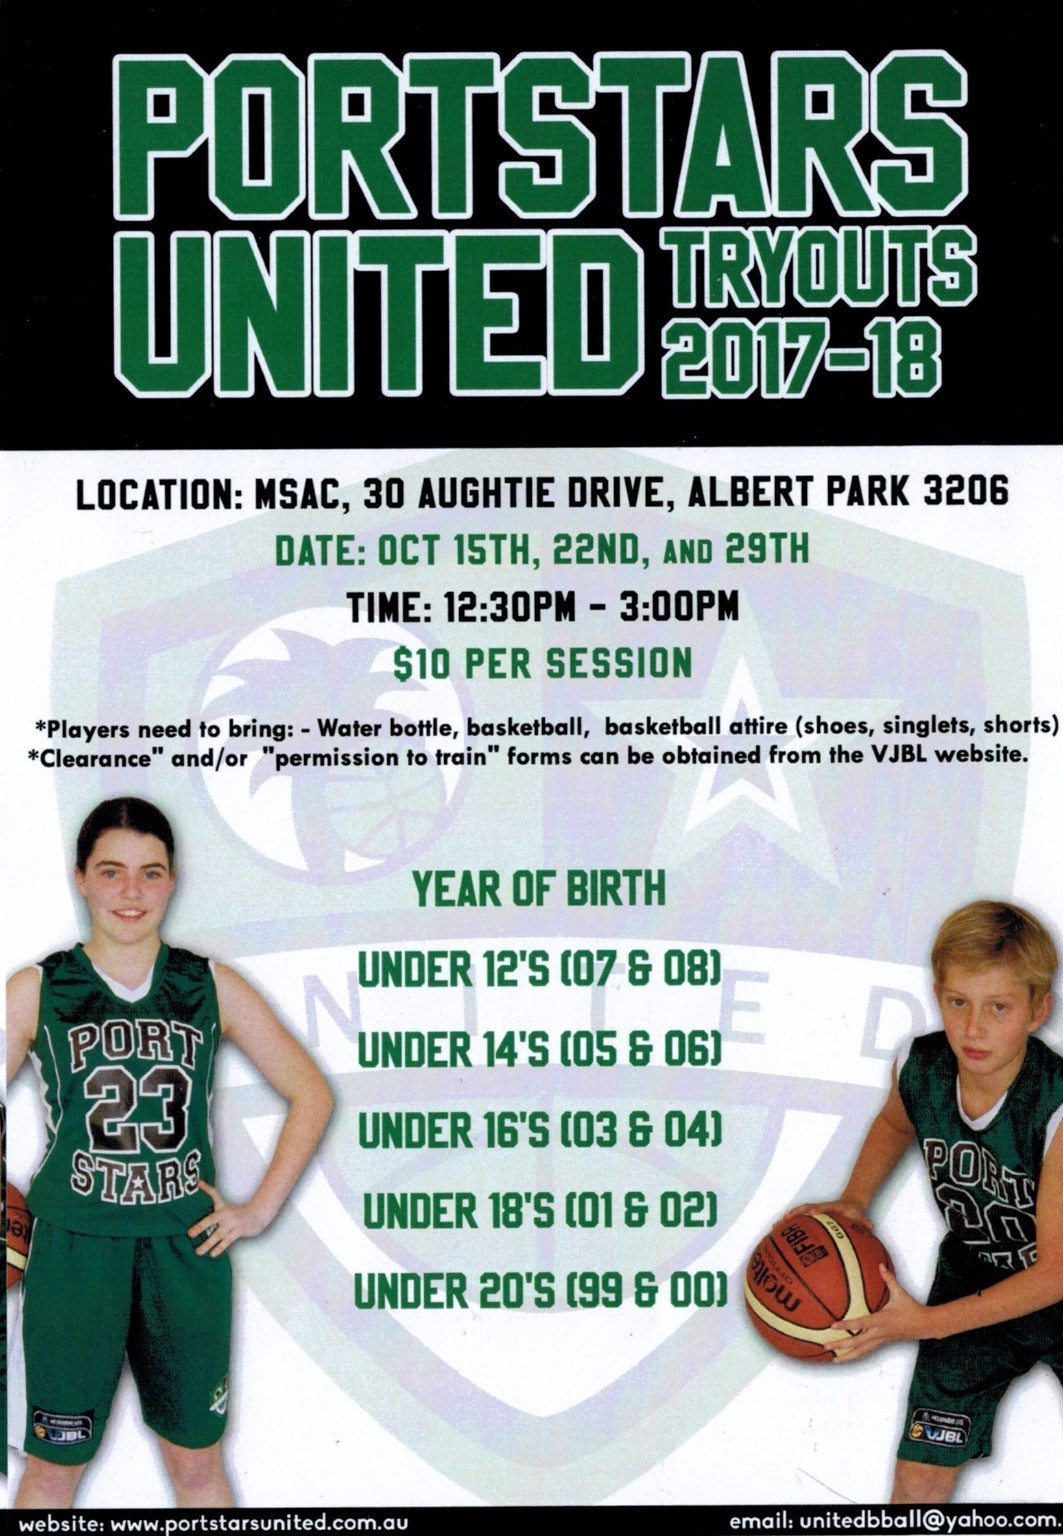 Port Stars United Try Outs